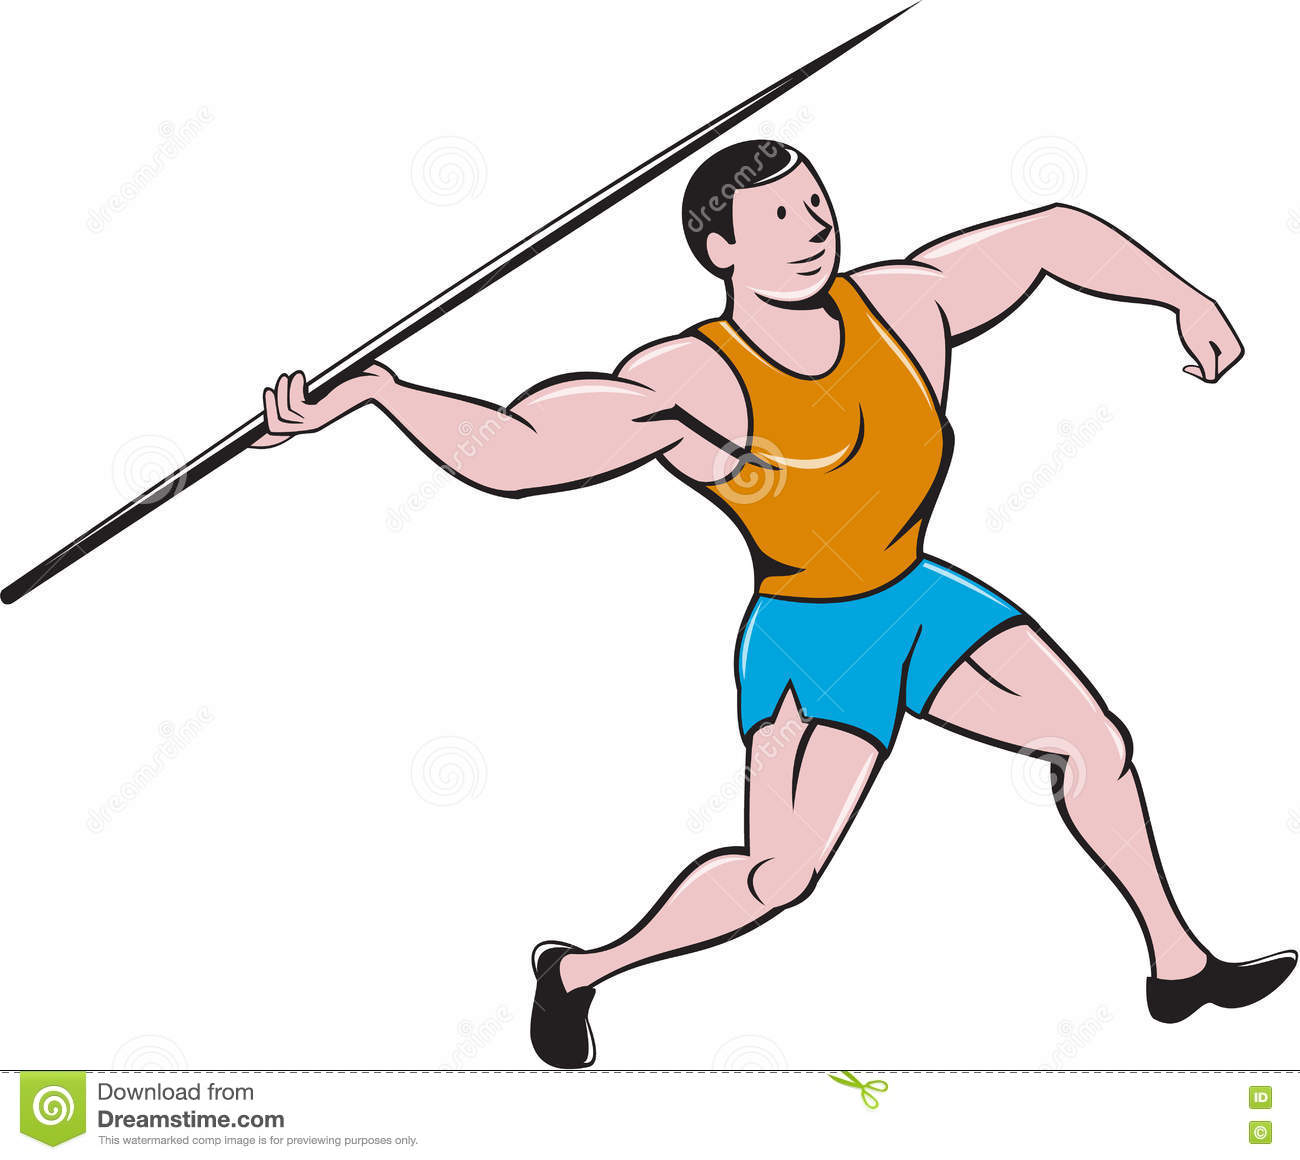 Javelin Throw Cartoon.